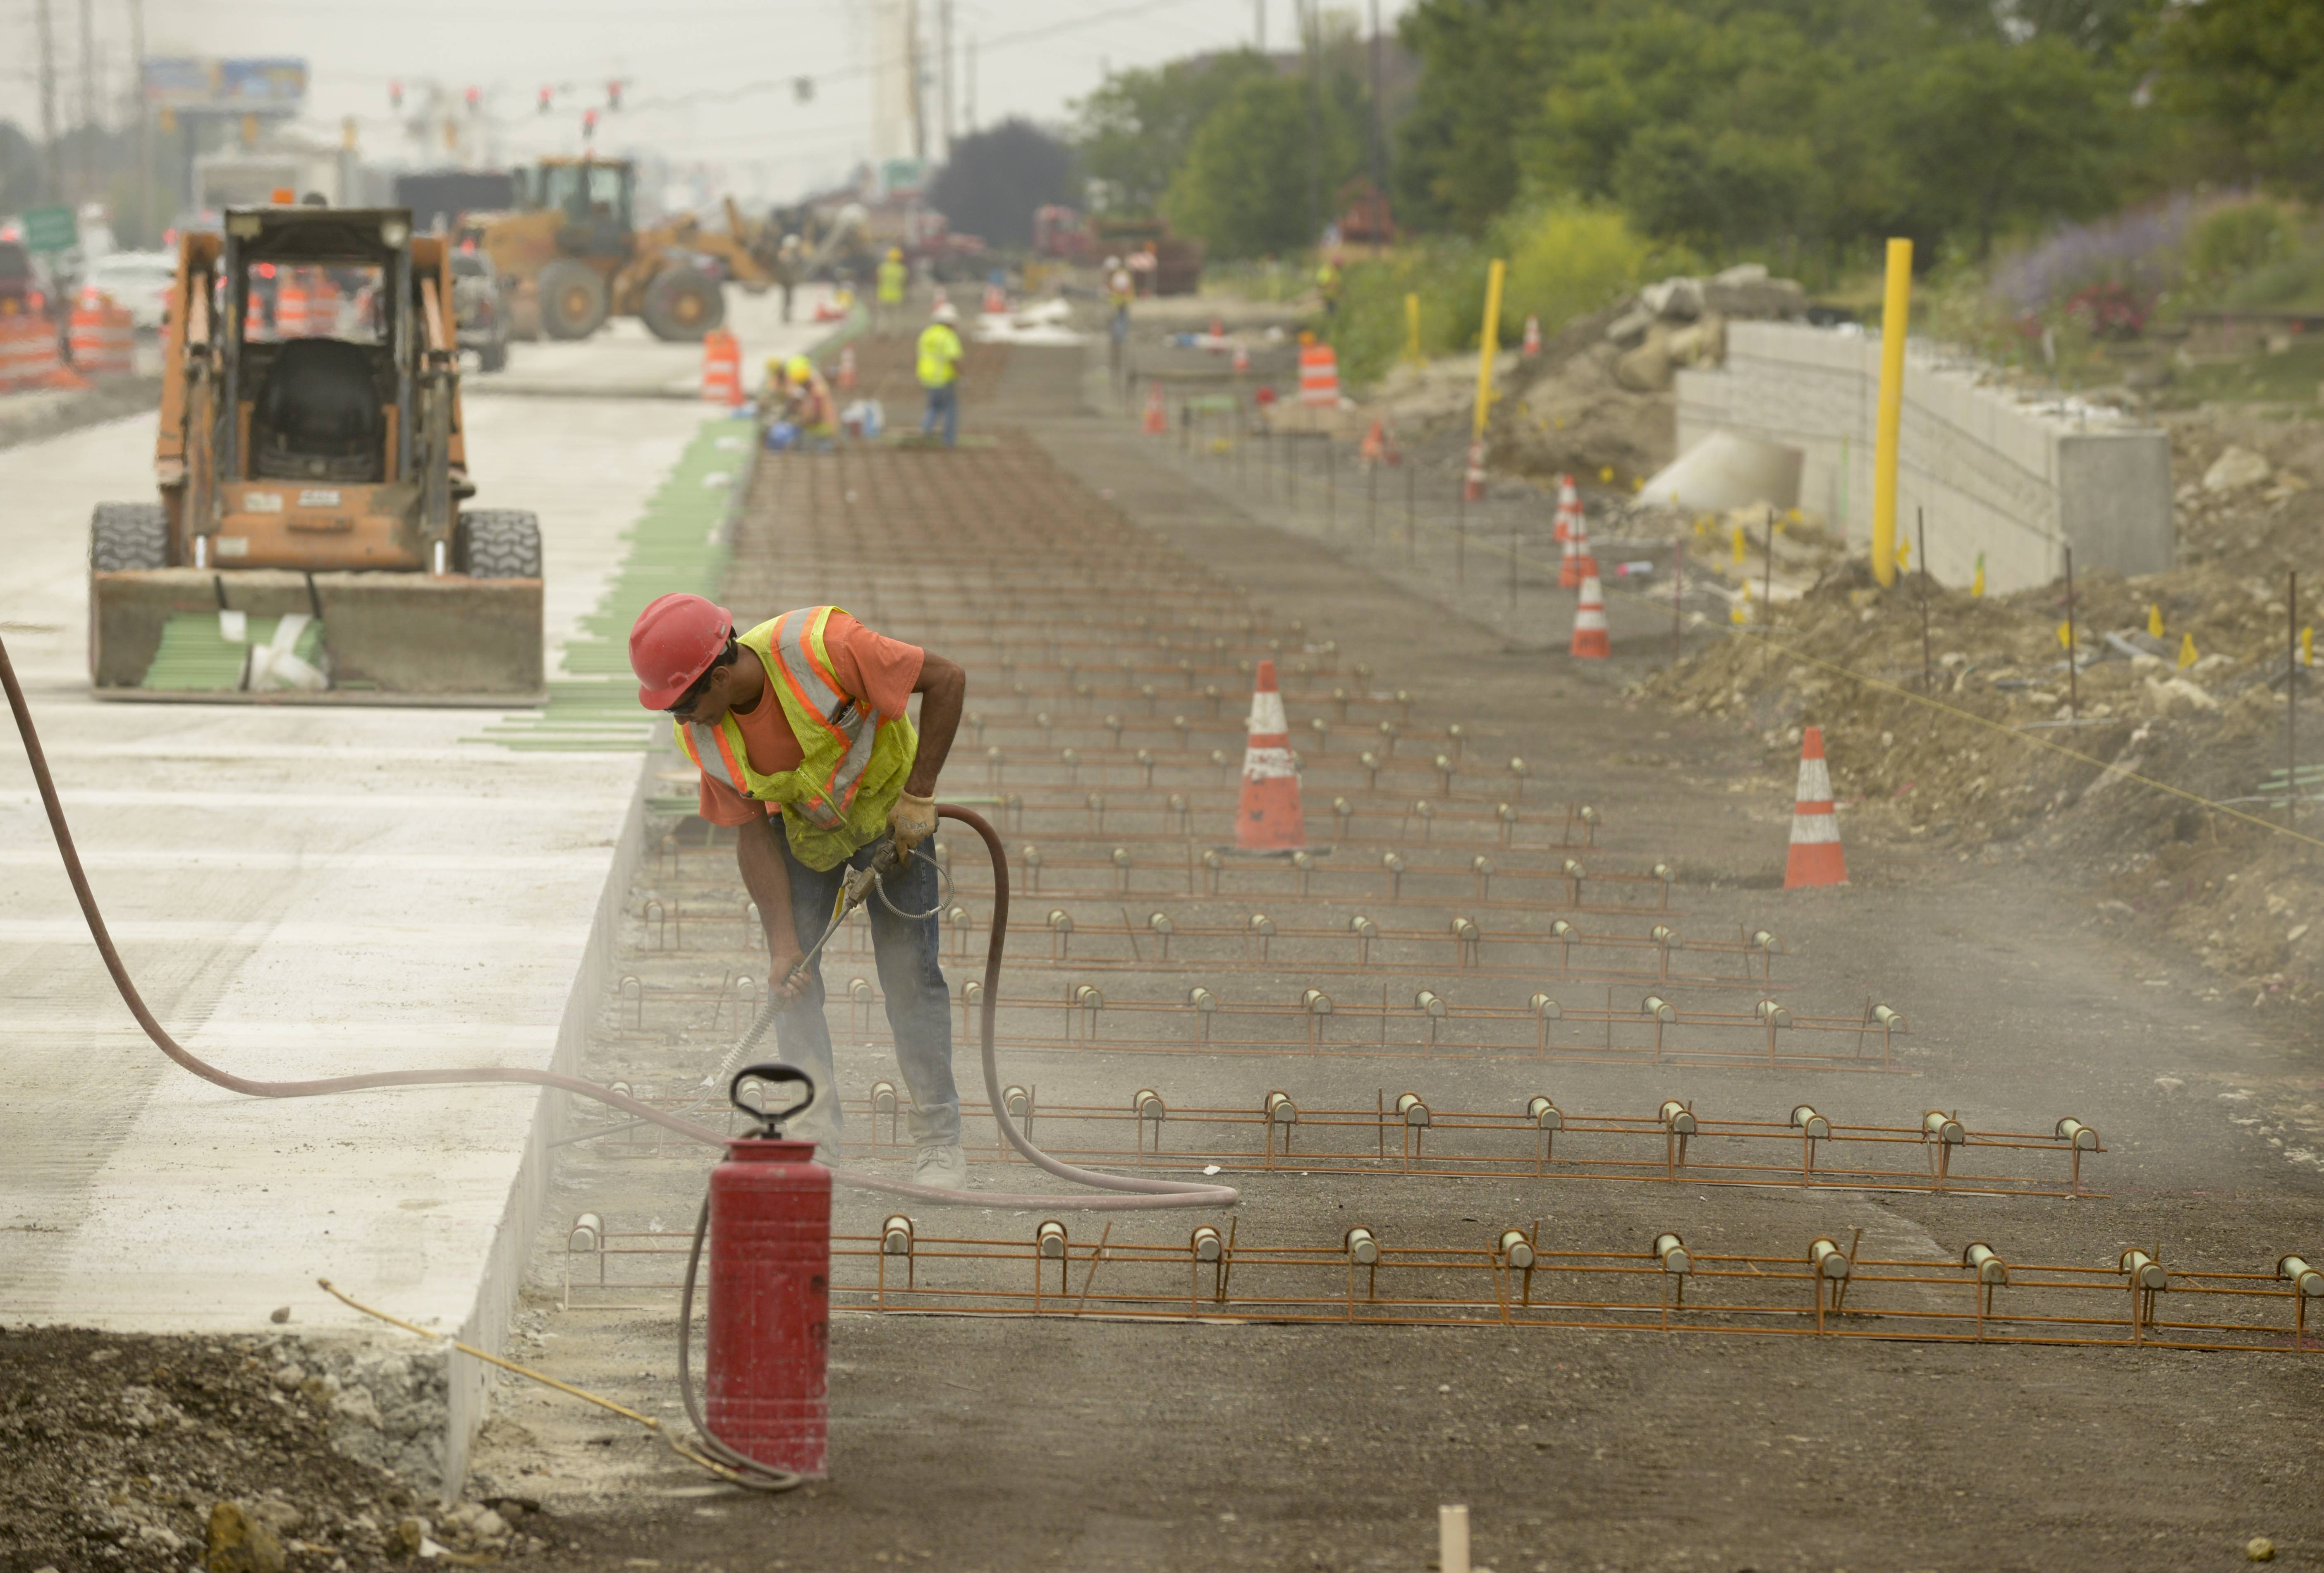 It's been almost a year since construction began on widening a 3.5-mile stretch of Route 59 in Naperville and Aurora, and permanent paving has just begun with crews now installing the rebar for the west portion of the southbound lanes near North Aurora Road.